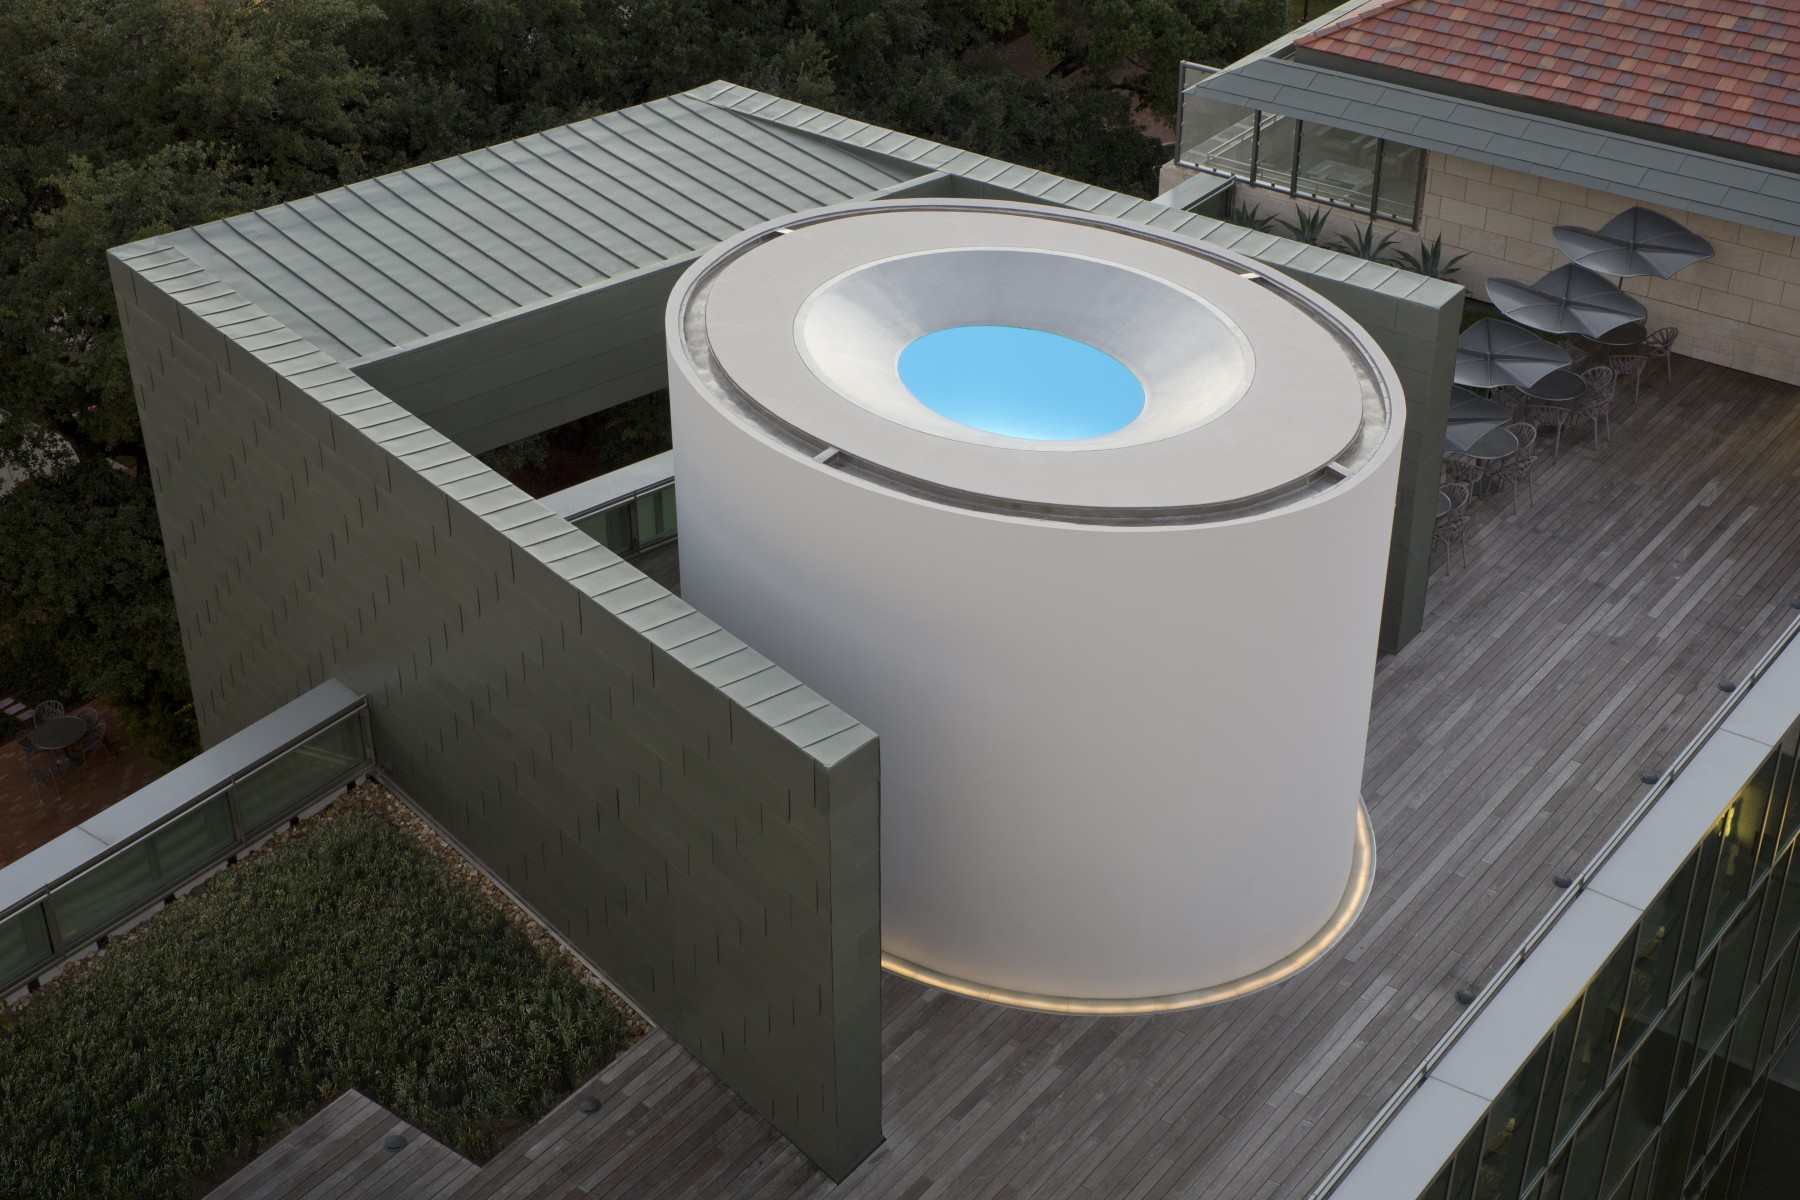 birds eye view of circular building with blue inside